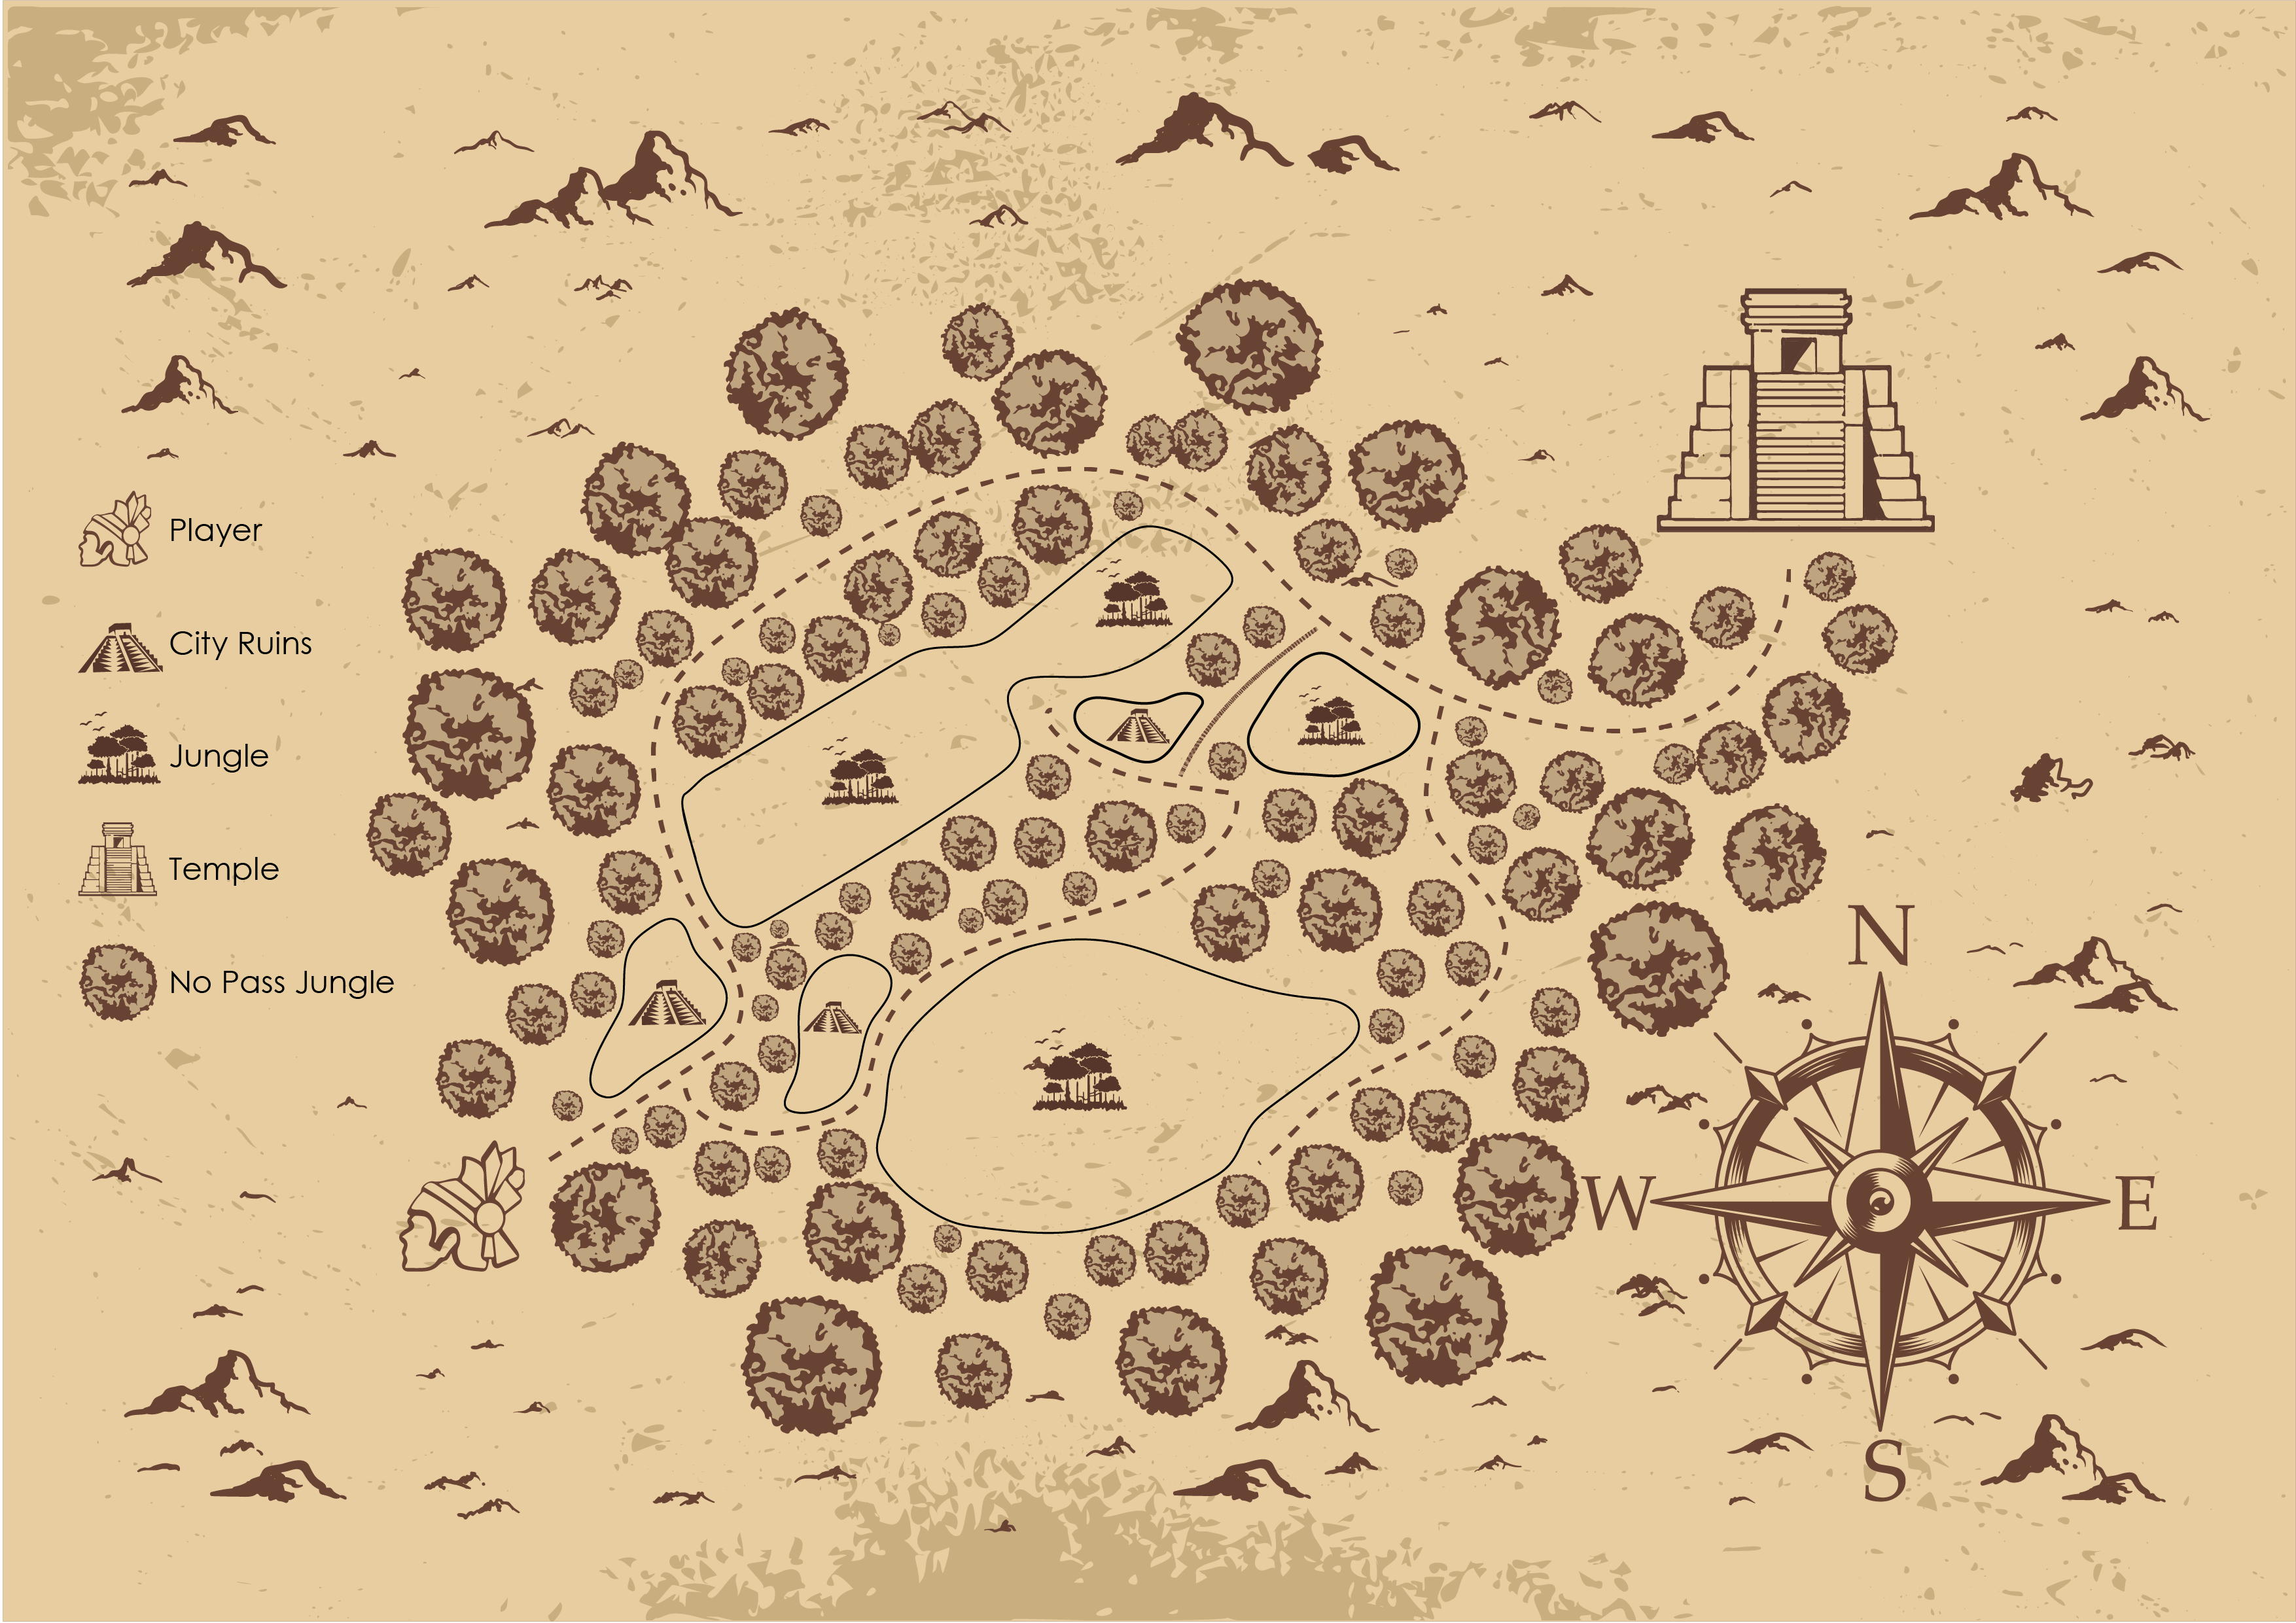 Mockup of the path the Warrior will take to reach their ultimate destination